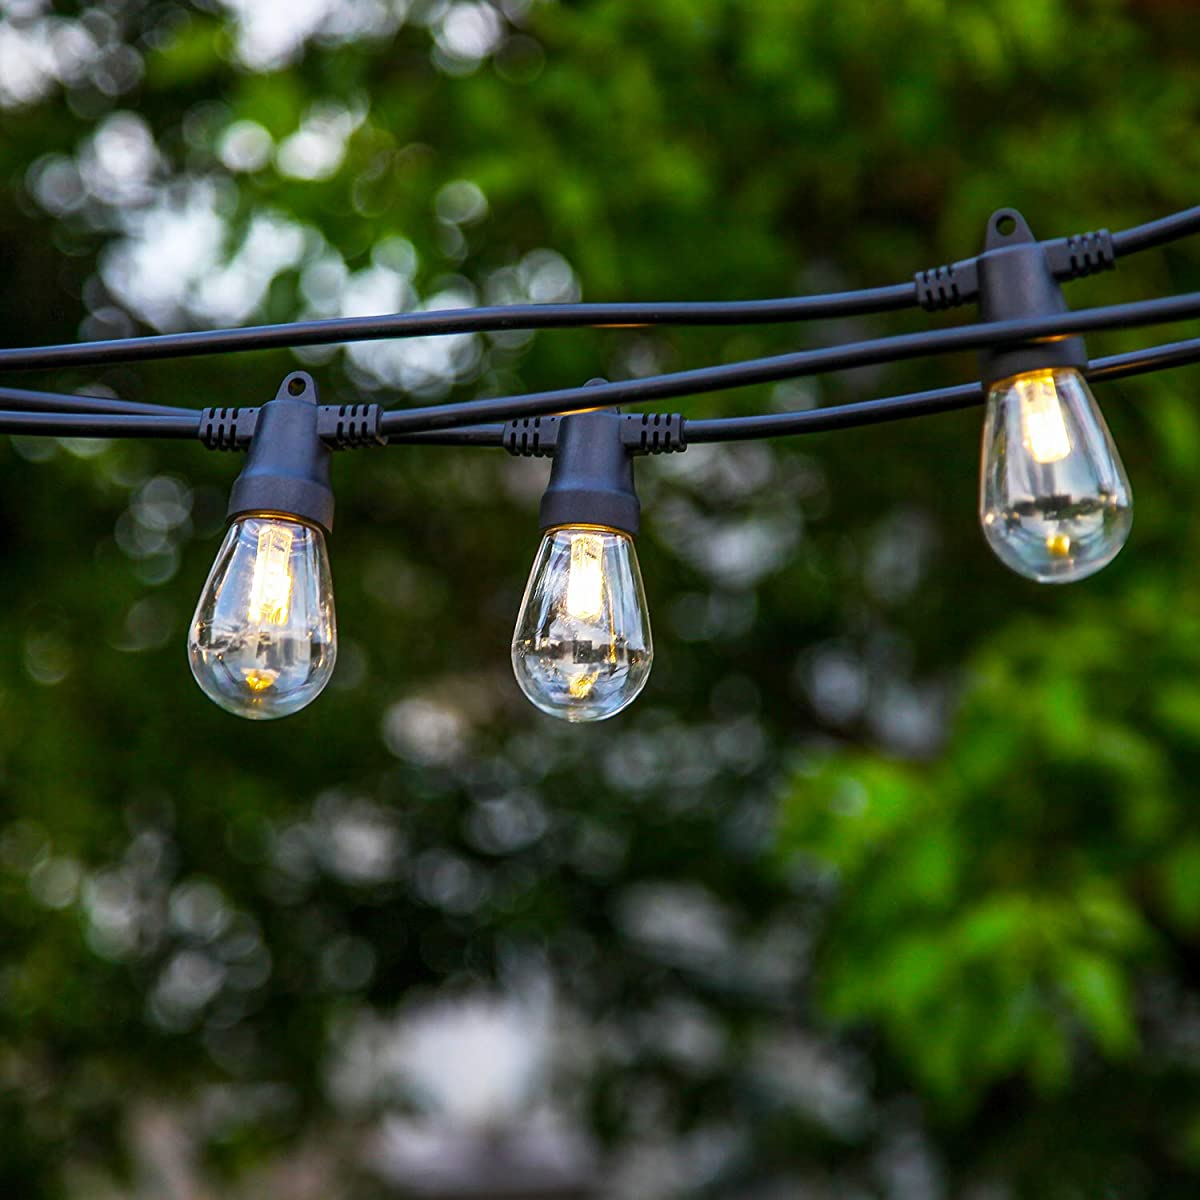 Brightech Ambience Pro - Waterproof LED Outdoor Solar String Lights - Hanging 1W Vintage Edison Bulbs - 27 Ft Heavy Duty Patio Lights Create Cafe Ambience On Your Porch